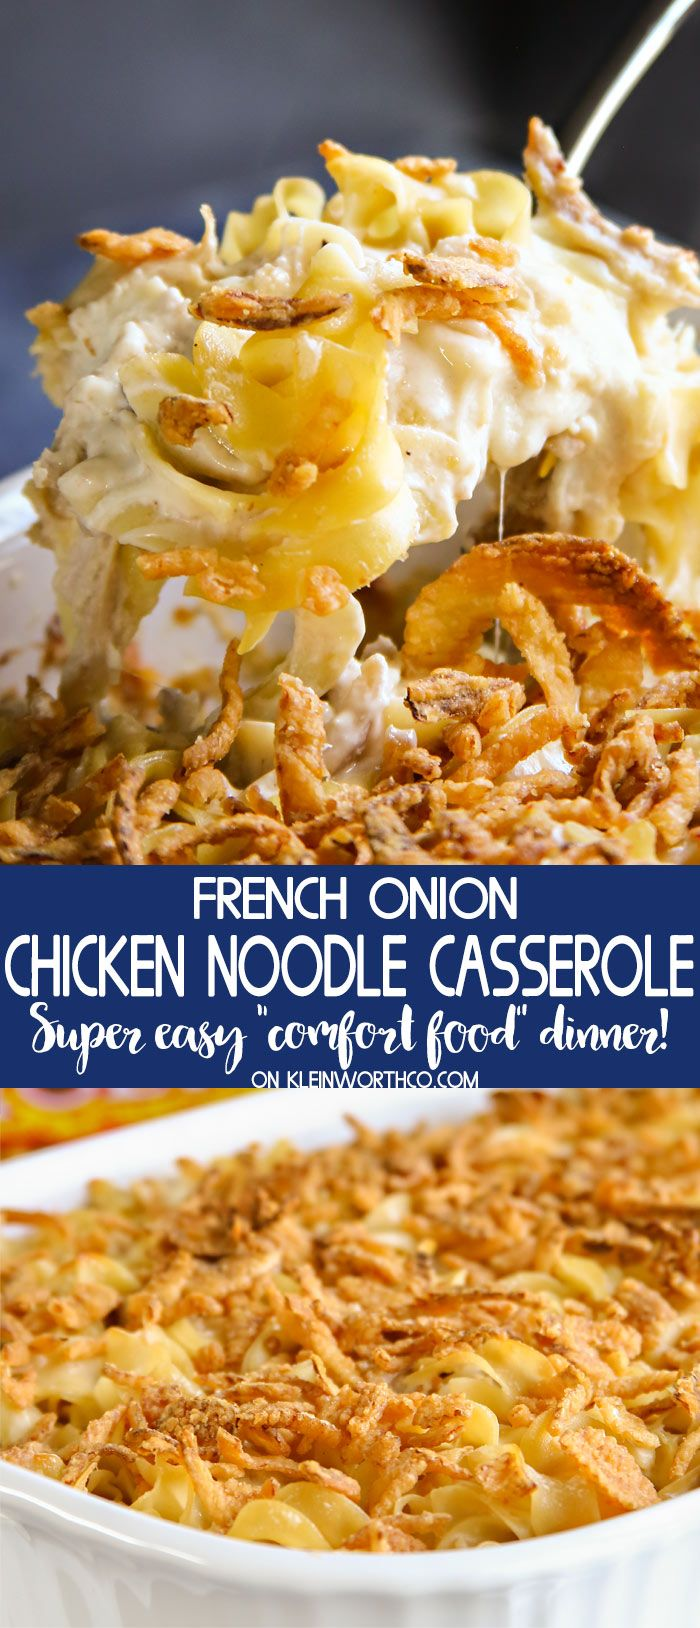 French Onion Chicken Noodle Casserole is an easy family dinner idea that everyone loves. Simple to make with rotisserie chicken & egg noodles. Delicious! @noyolksnoodles #ad #NoYolks #NoOtherNoodle #MC